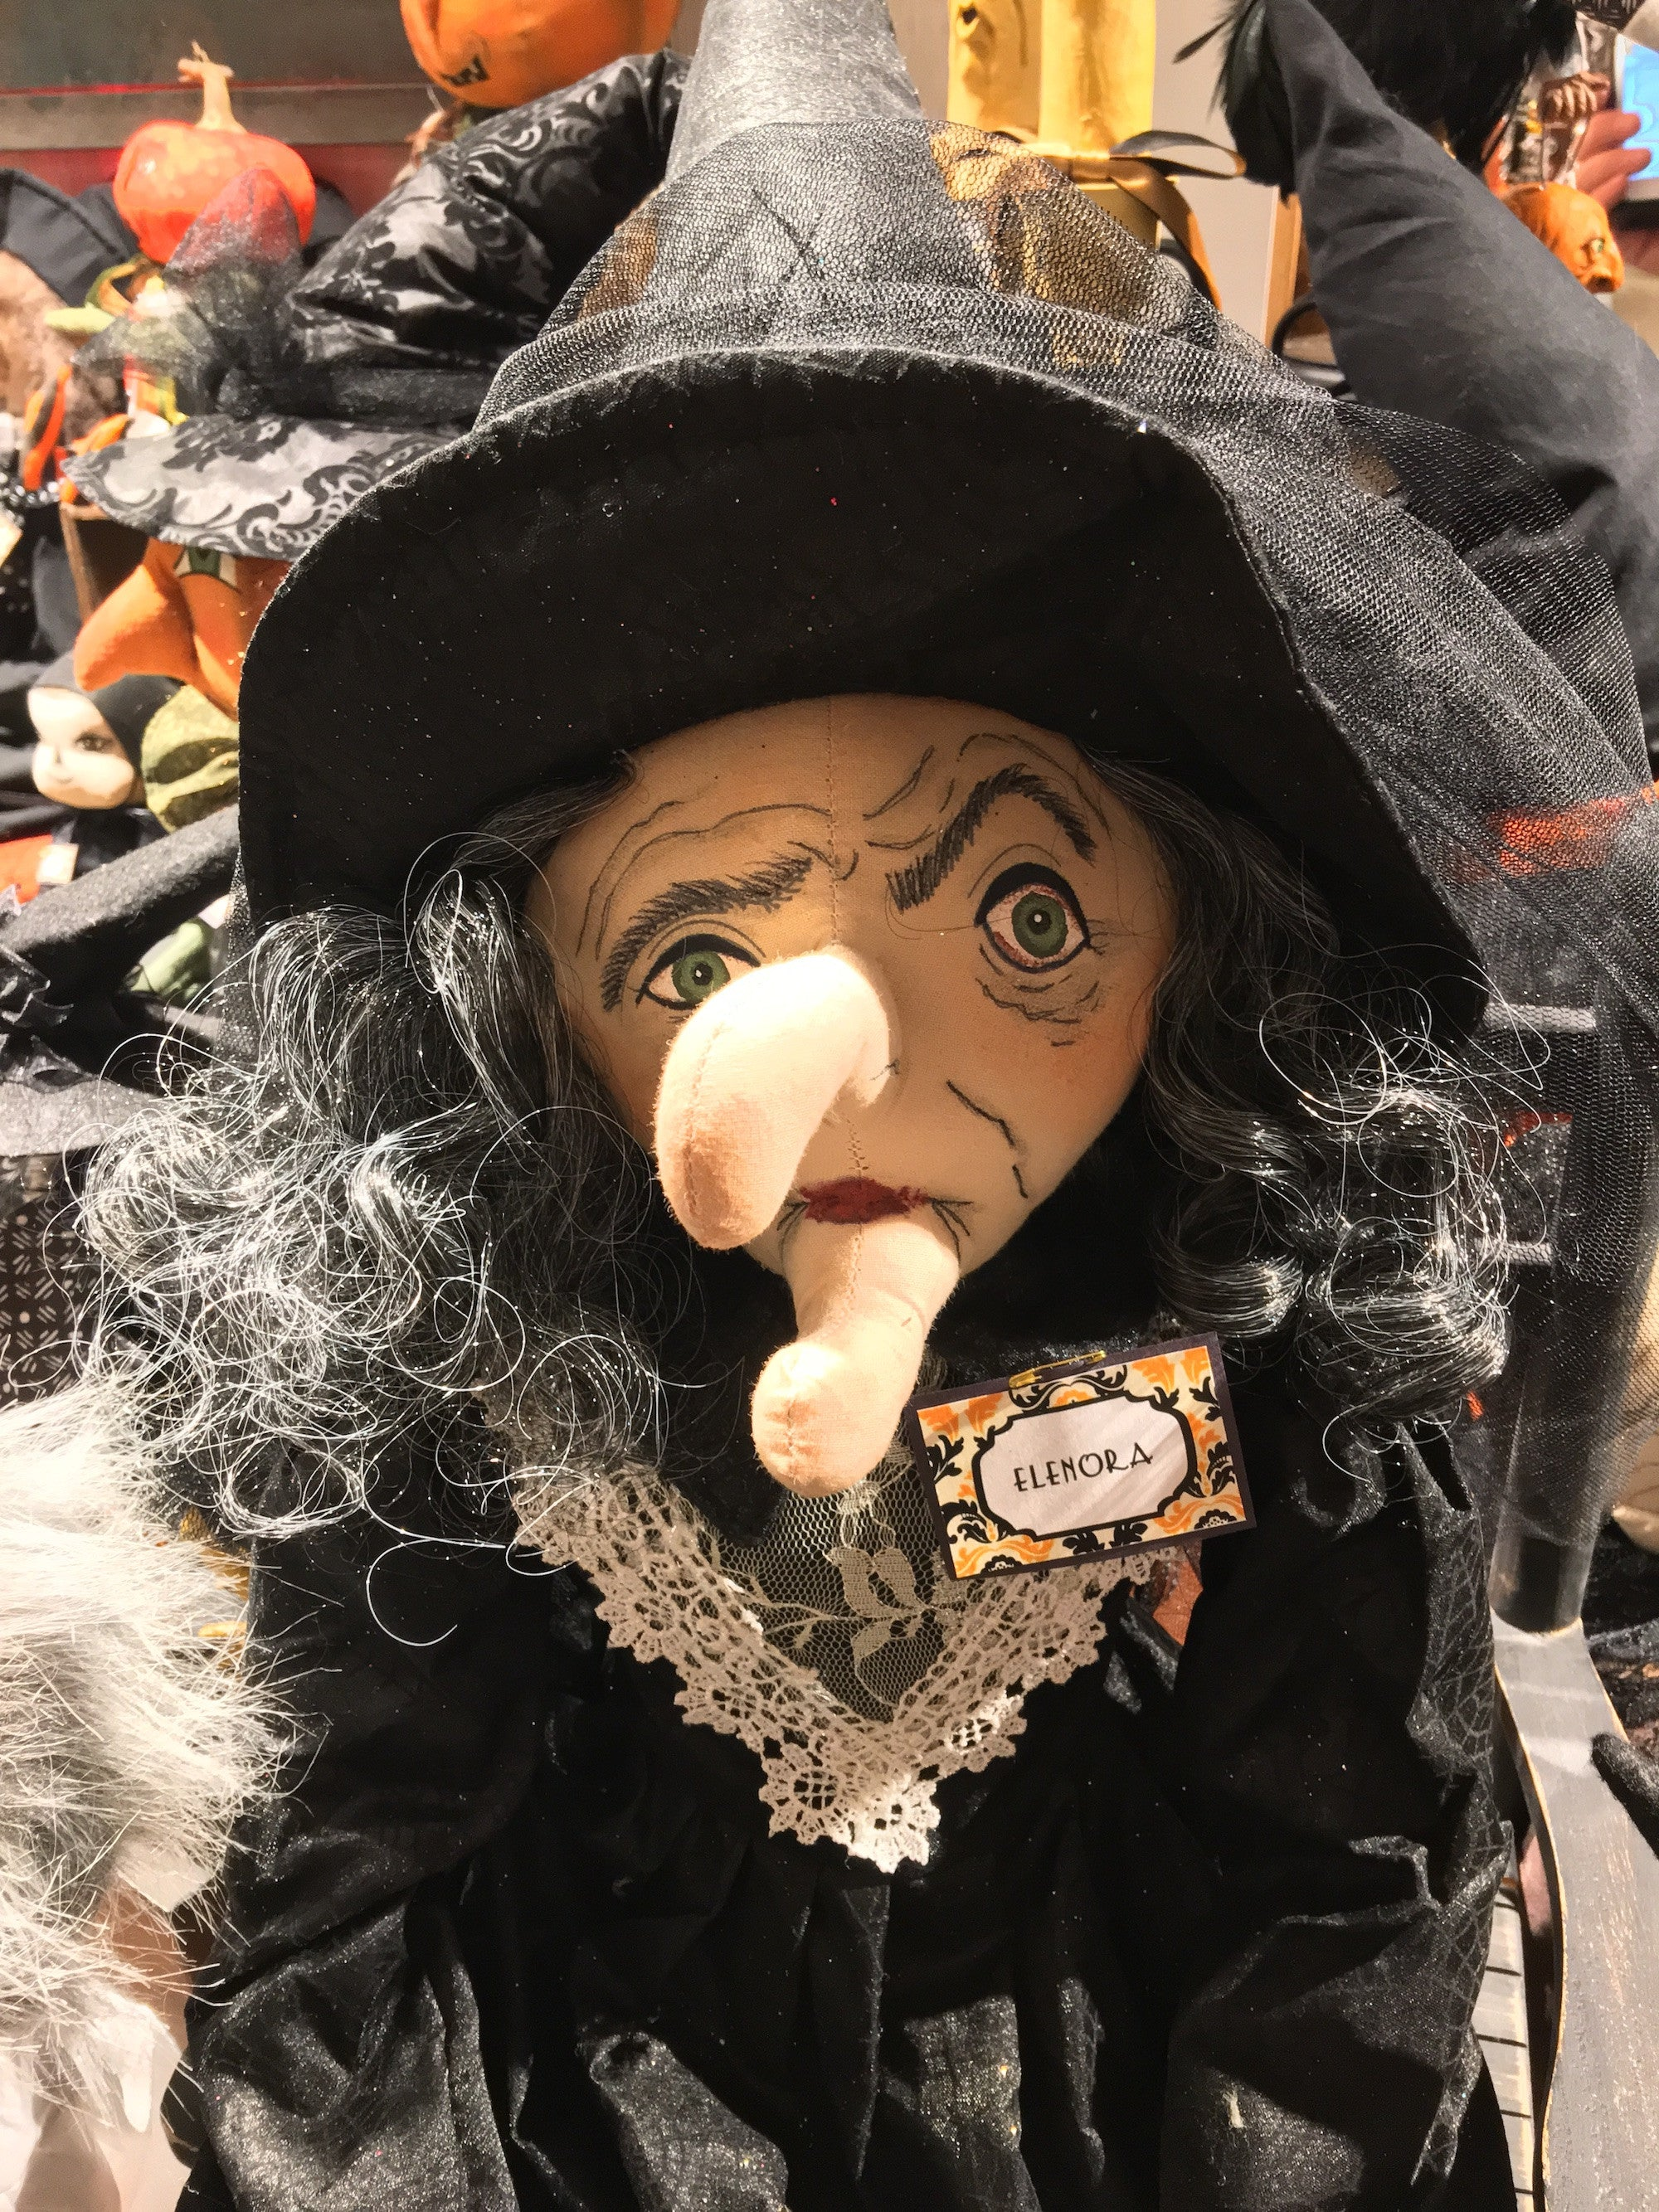 Elenora Witch Doll with Rat by Joe Spencer